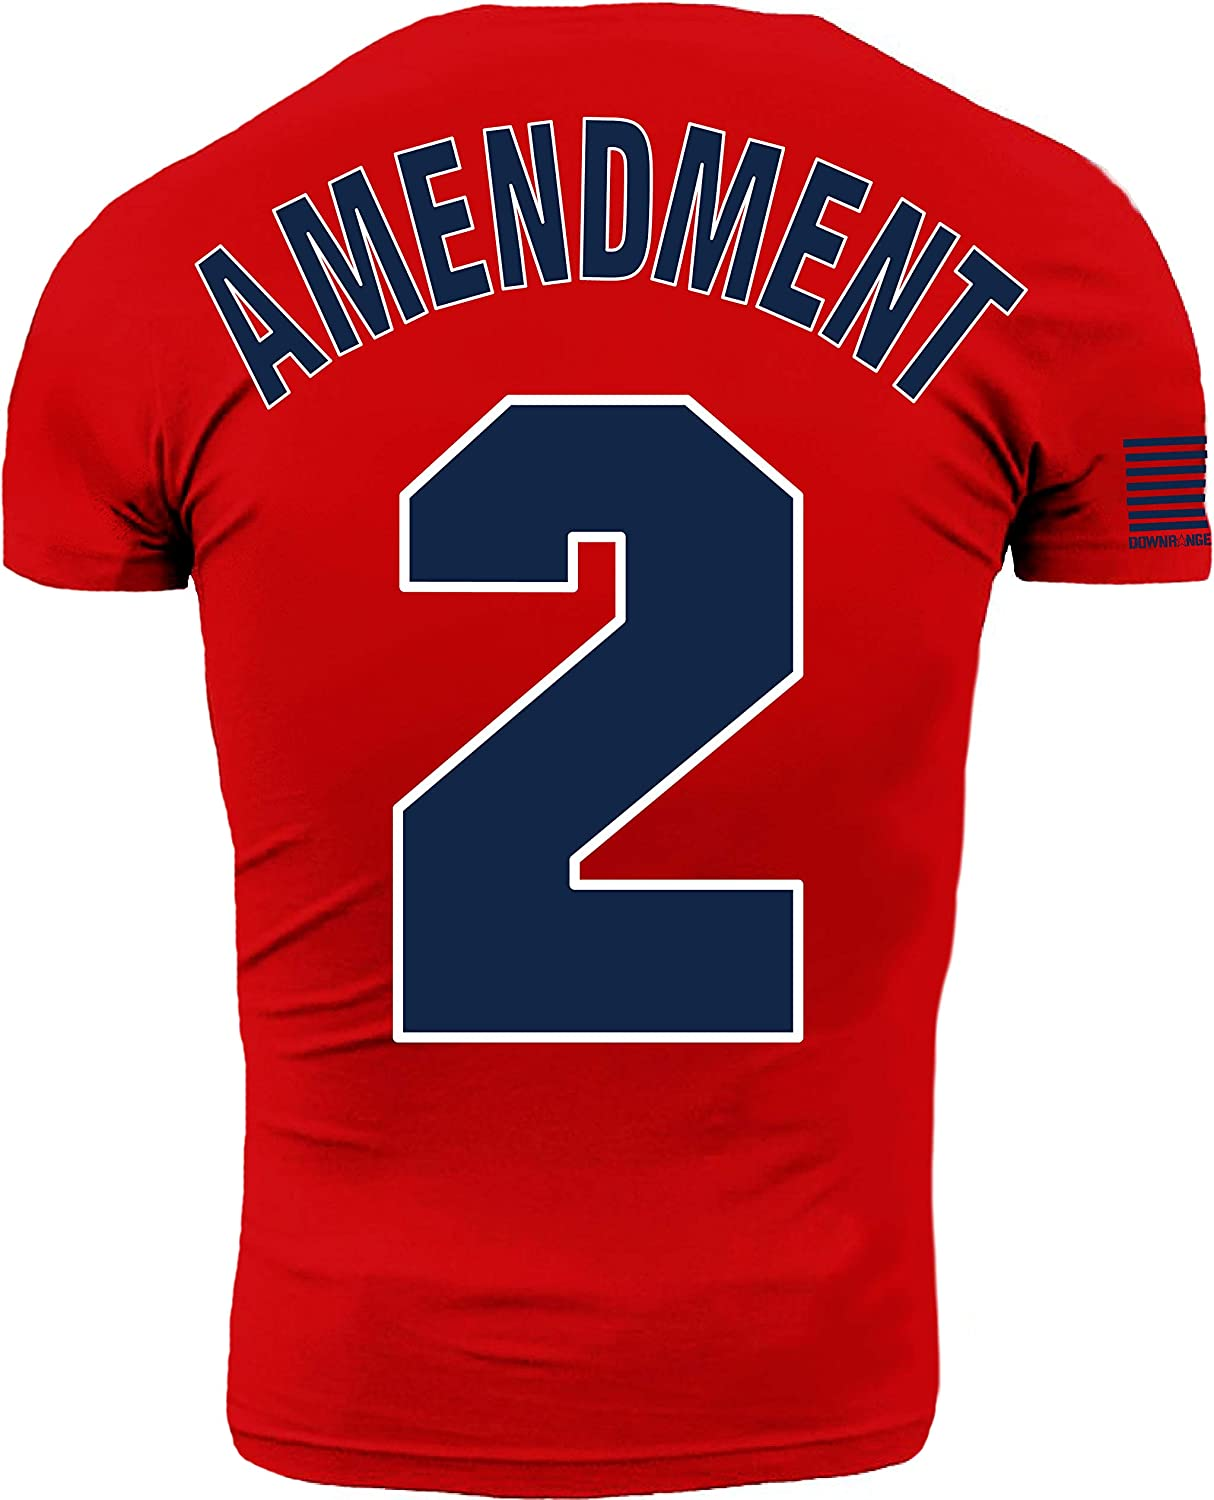 Boston Red Second Amendment 2A Americans Premium Athletic Fit T Shirt